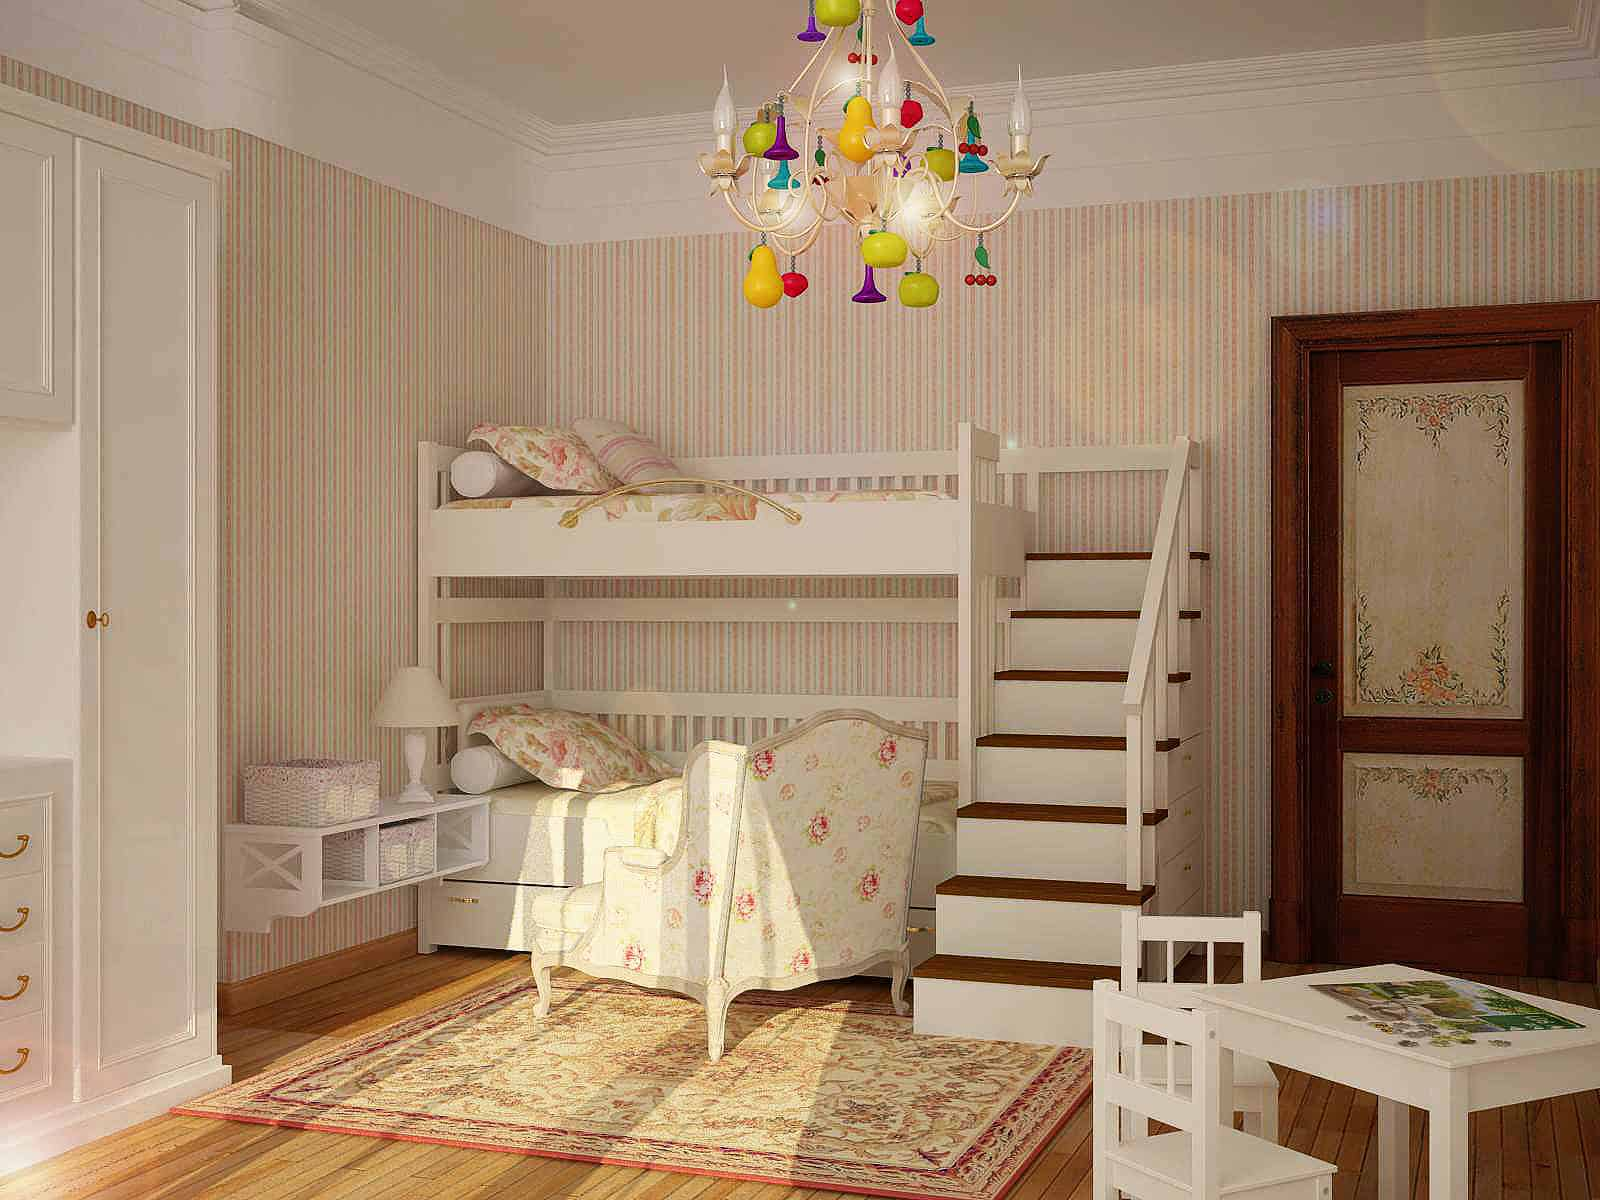 Children S And Kids Room Ideas Designs Inspiration: Kids Room Ideas: French Country Decor